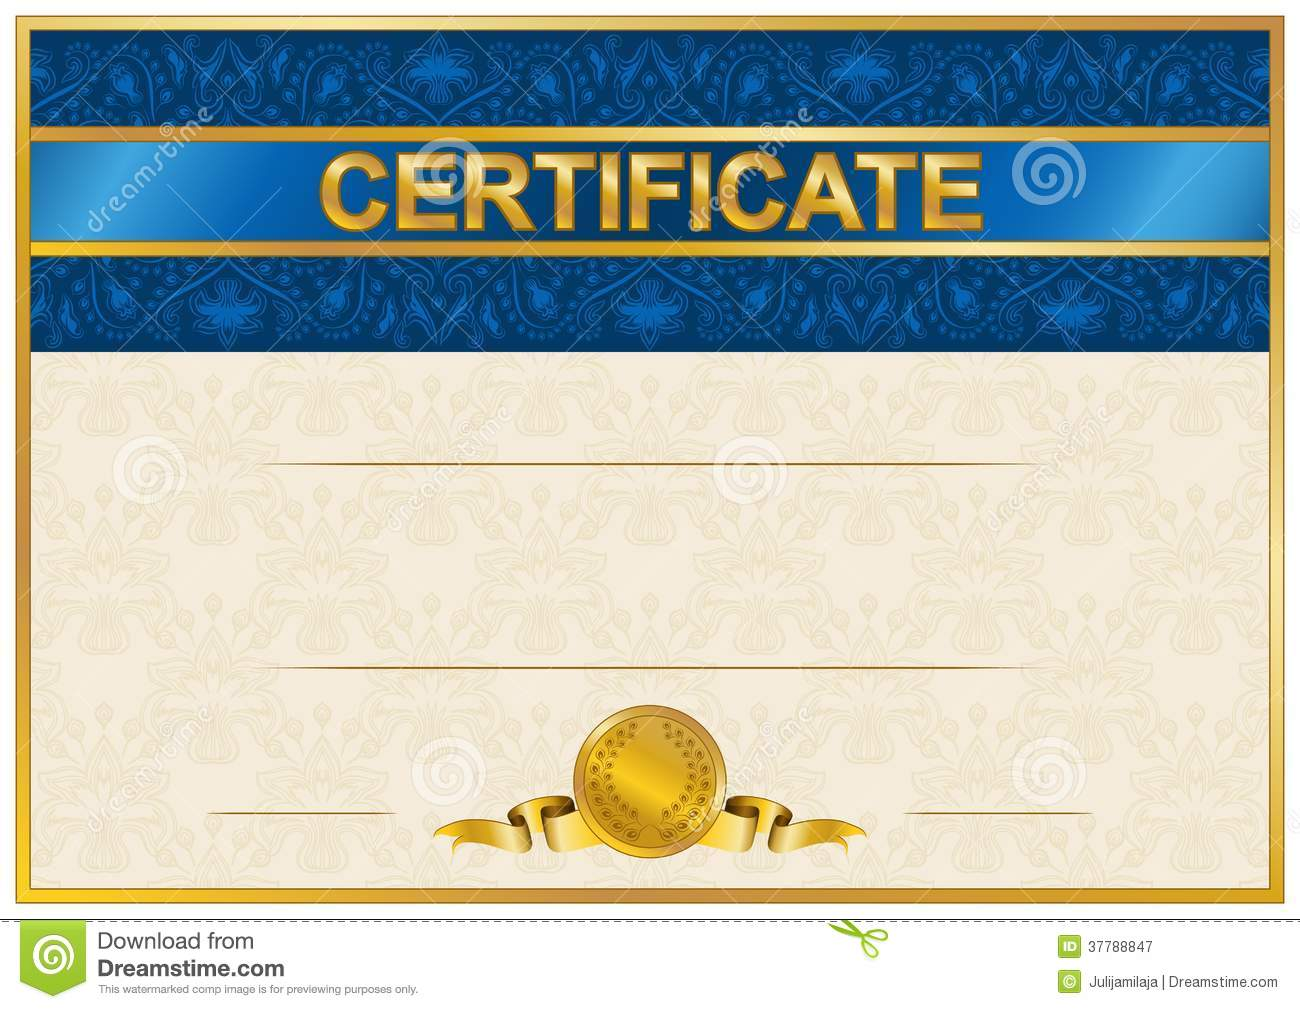 Free share certificate template sign up sheet template blank stock certificate template free format salary slip memo template elegant template certificate diploma lace ornament xflitez Choice Image